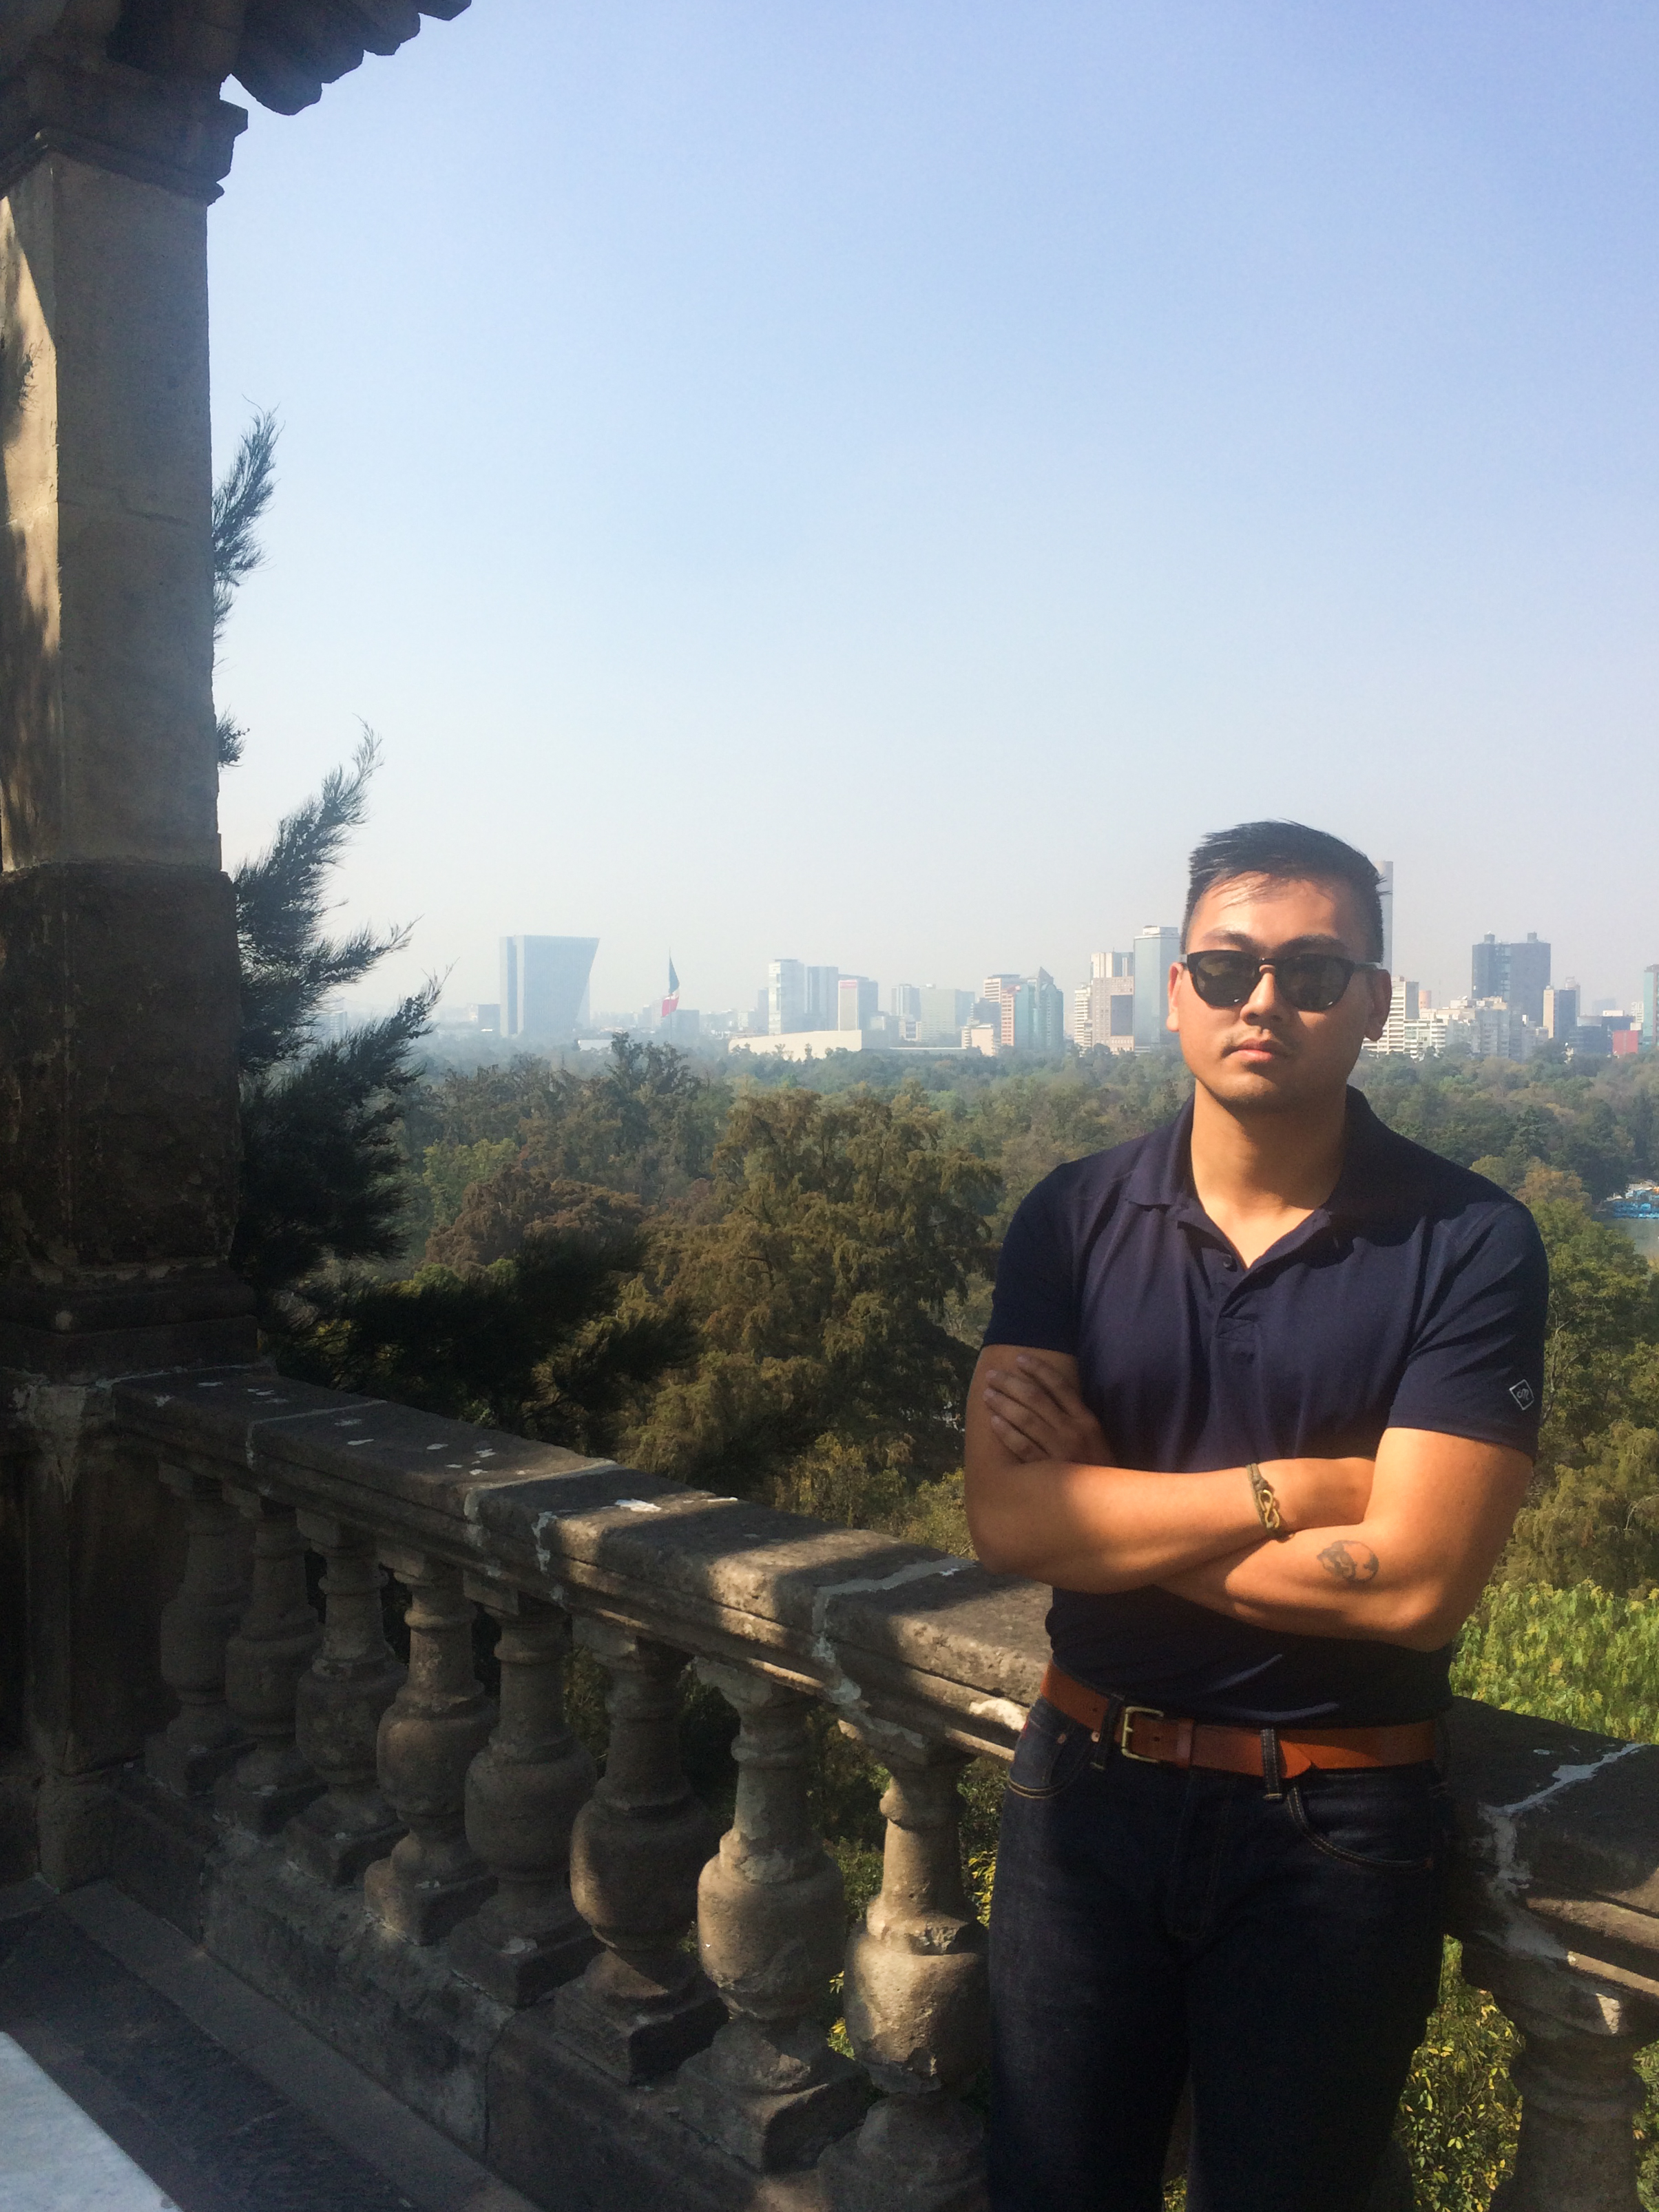 The view from Chapultepec Castle.